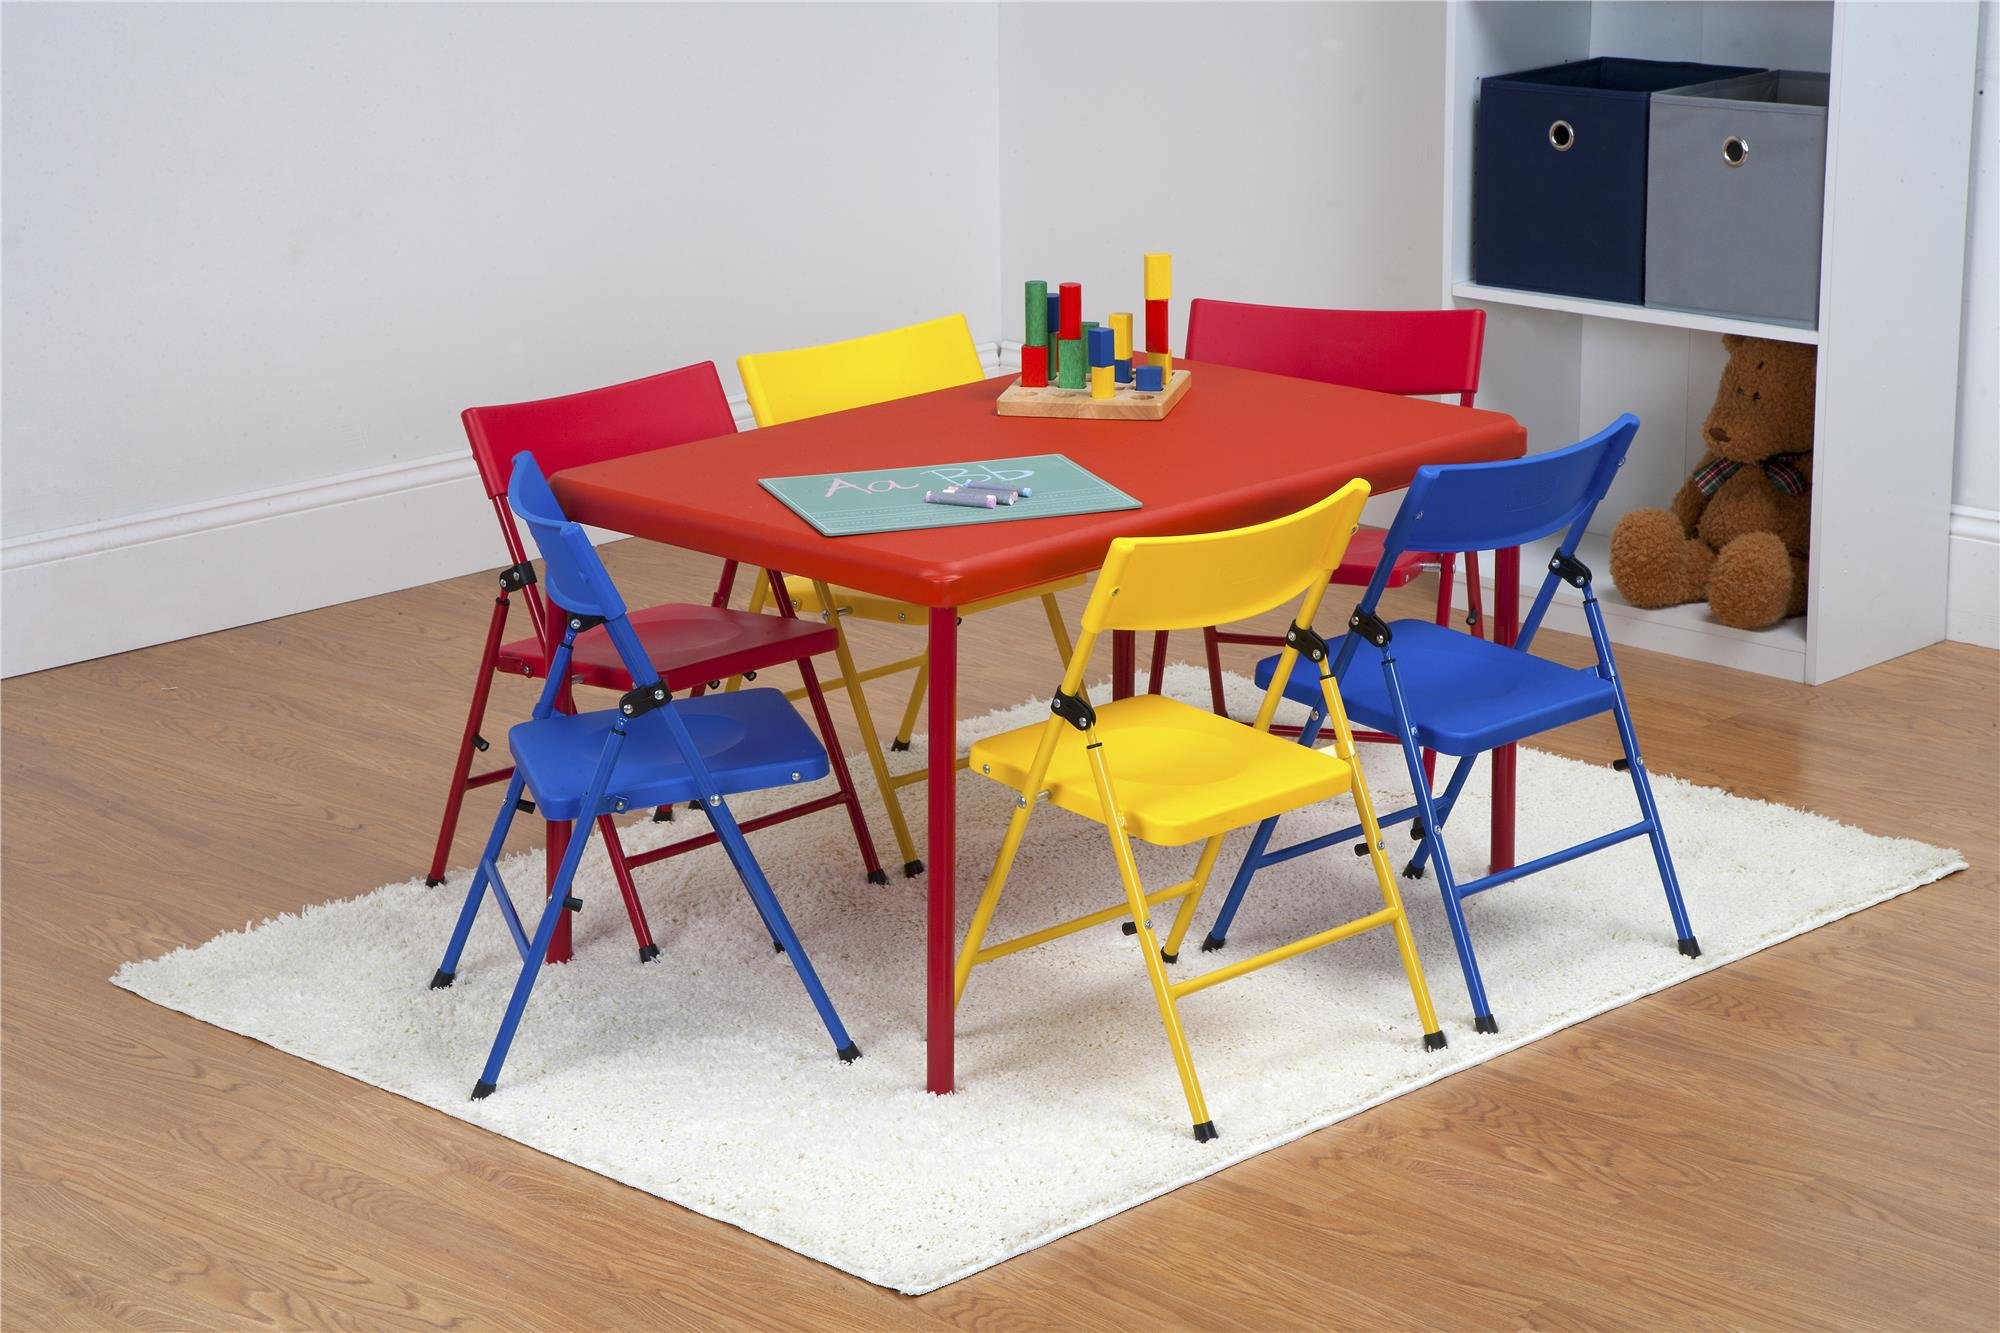 Cosco Kids Furniture 7 Piece Children'S Juvenile Set with Pinch Free Folding Chairs & Screw in Leg Table by Cosco Kids Furniture